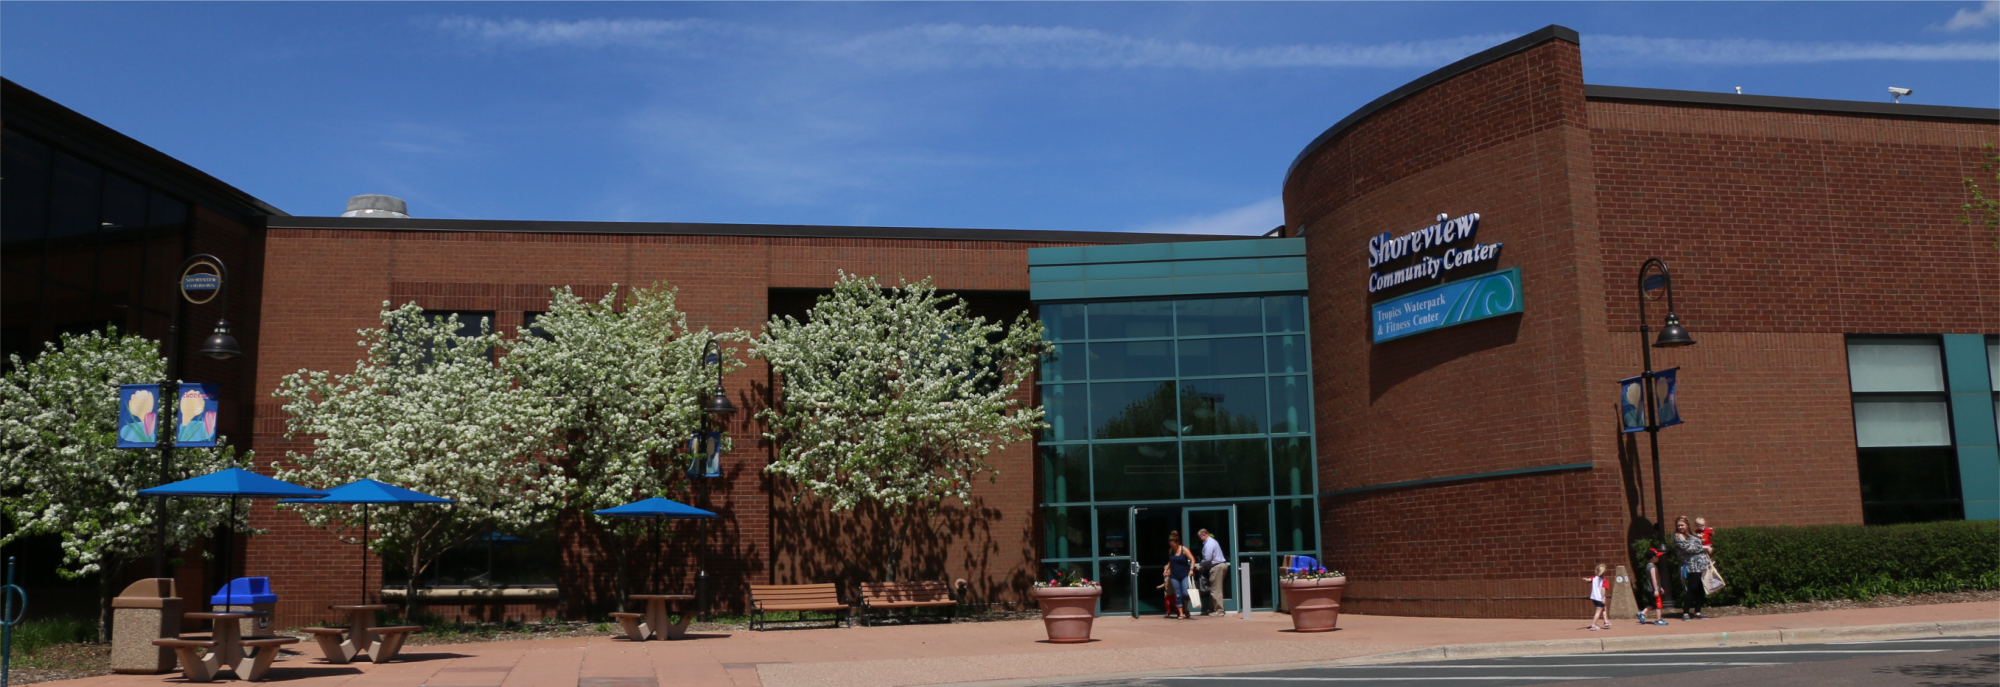 Community center lower entrance during spring